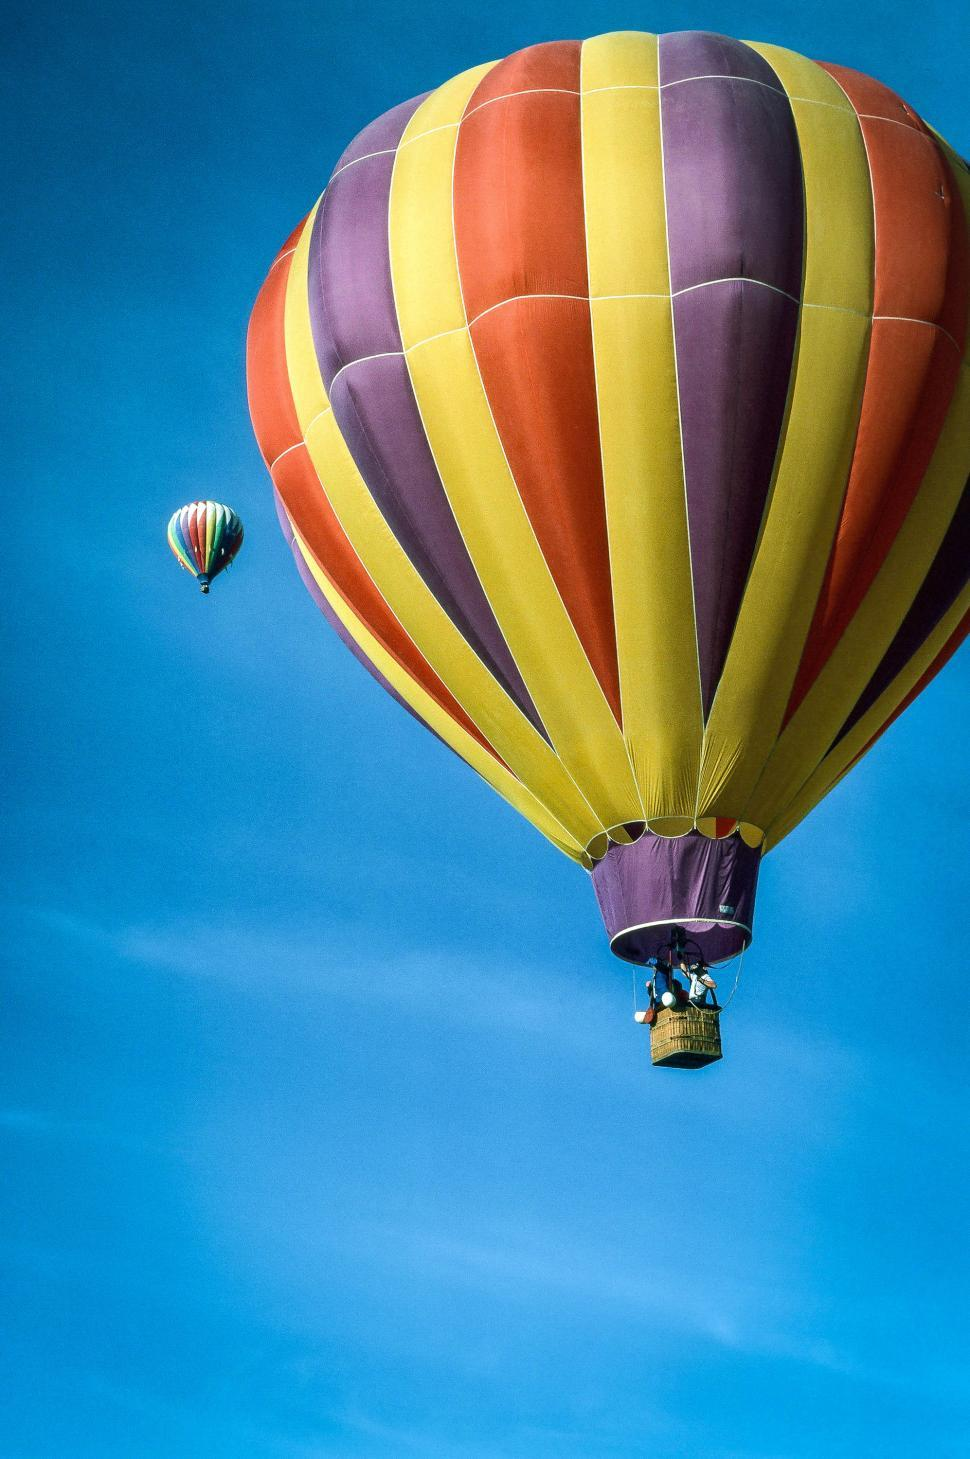 Download Free Stock HD Photo of Hot-air balloons Online